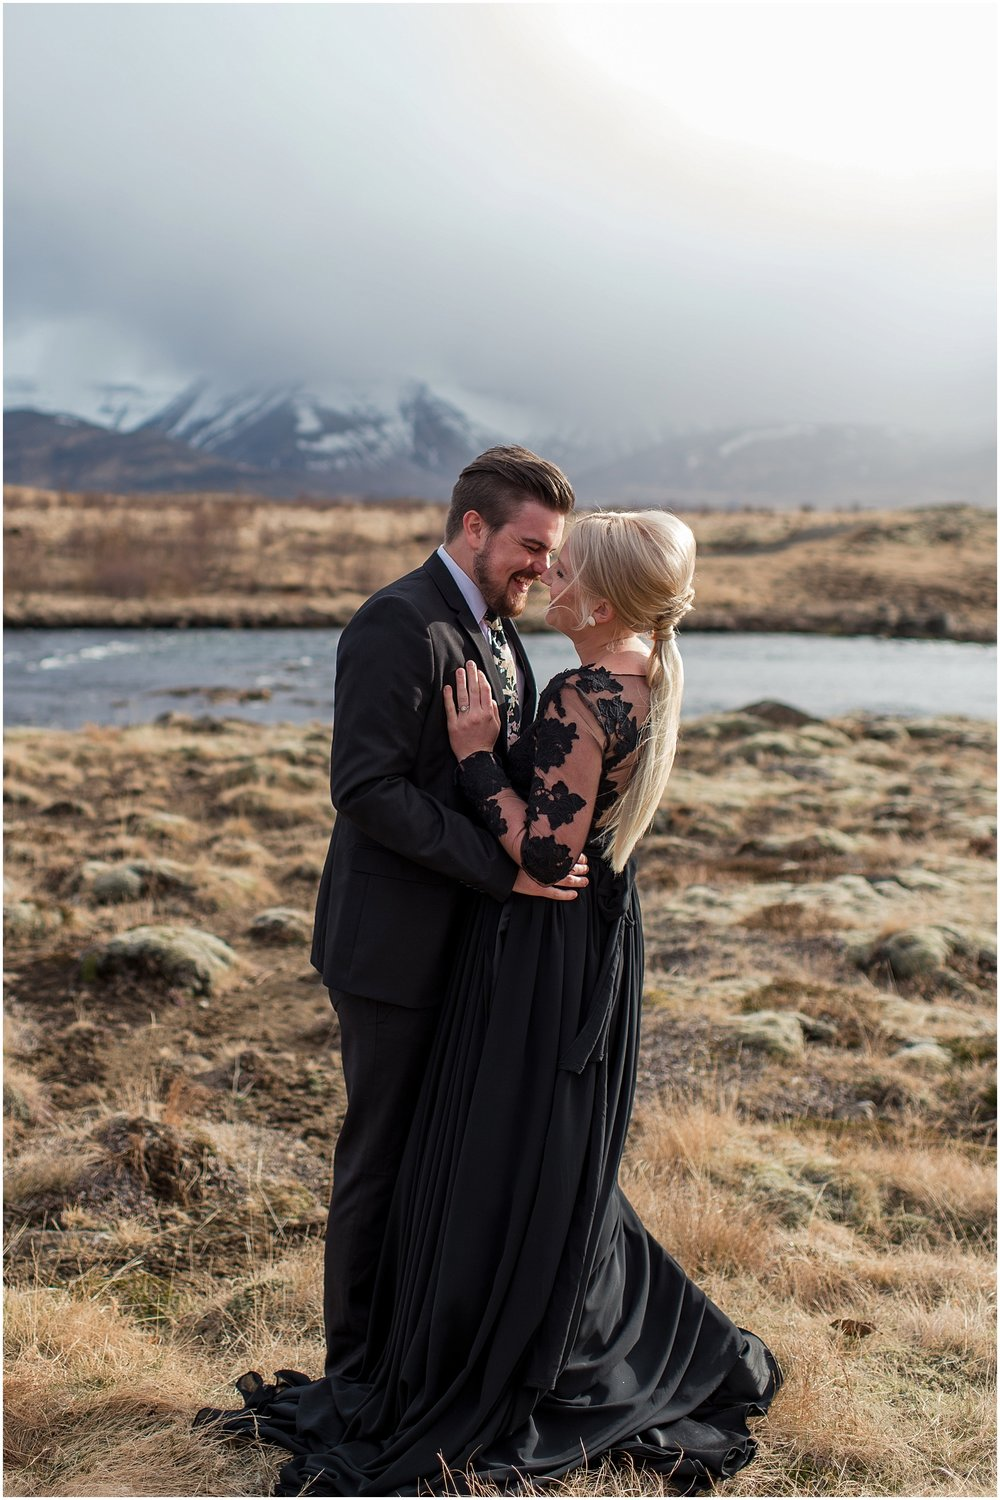 Hannah Leigh Photography Black Wedding Dress Iceland Elopement_2421.jpg